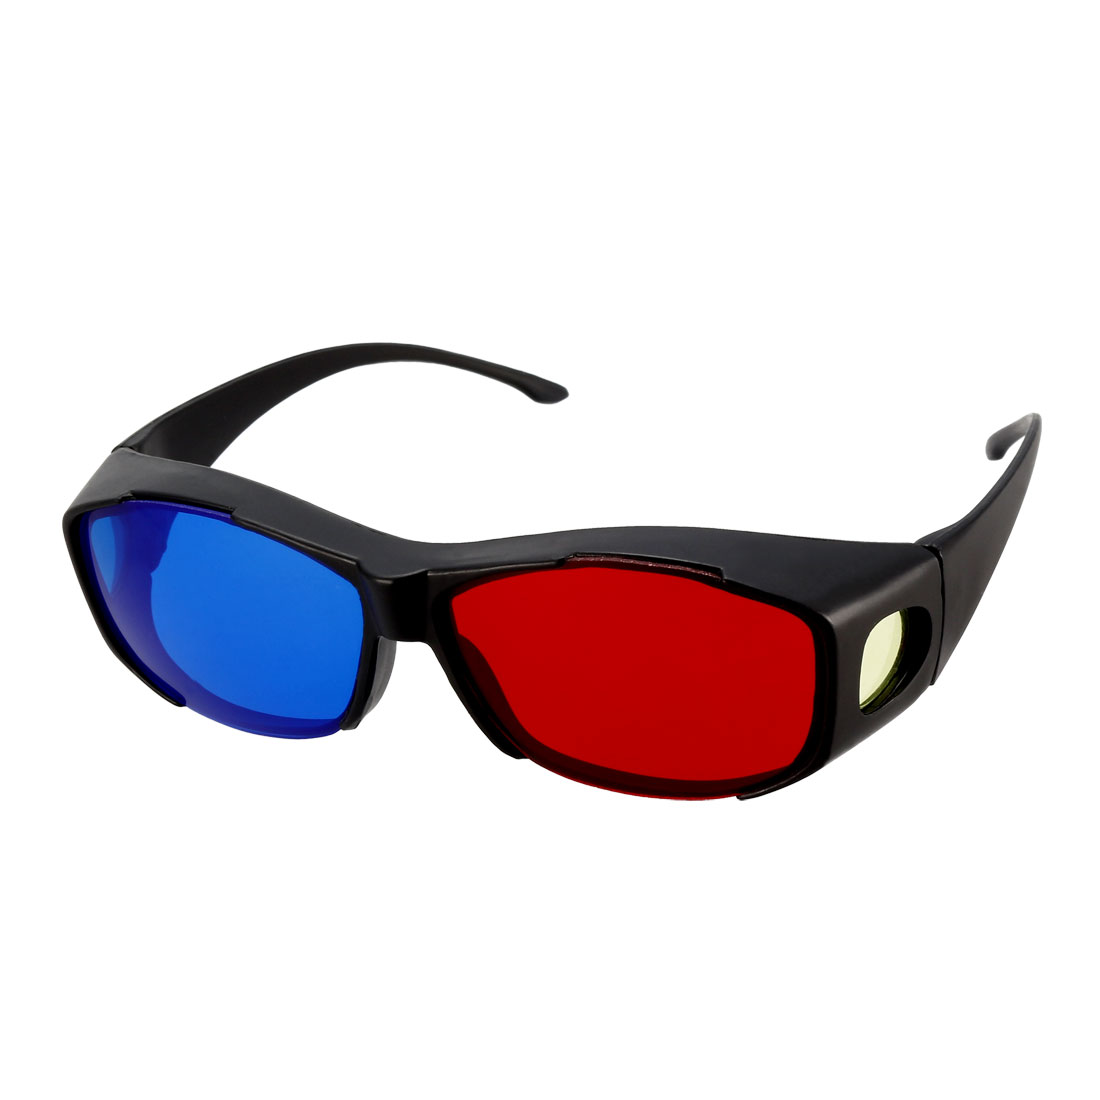 Red-Blue 3D Glasses 3D Visoin Glass for Red - Blue Format Movie/Picture 2pcs